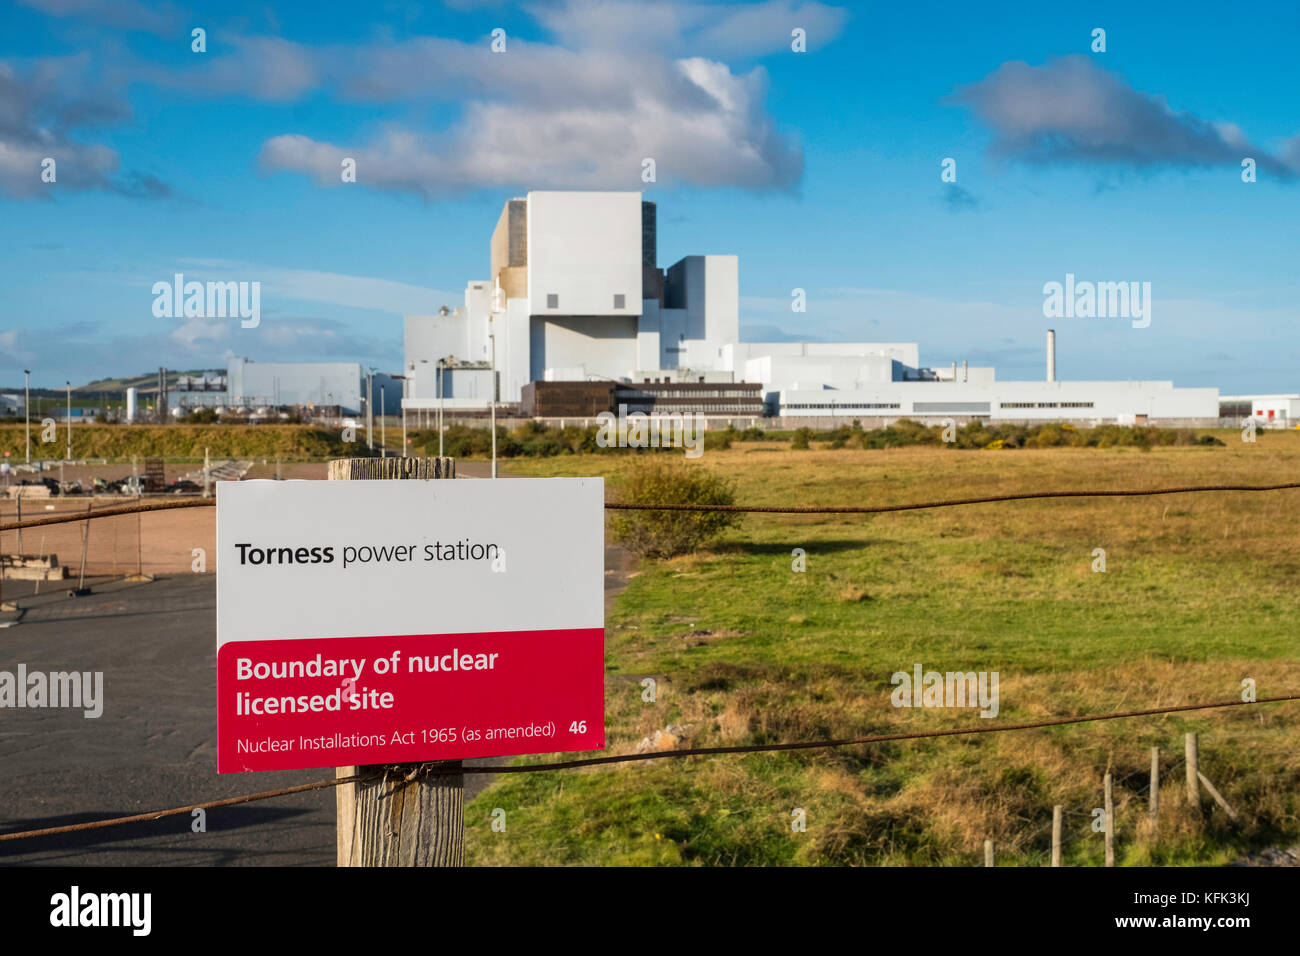 View of Torness Nuclear Power station in Scotland, United Kingdom. - Stock Image